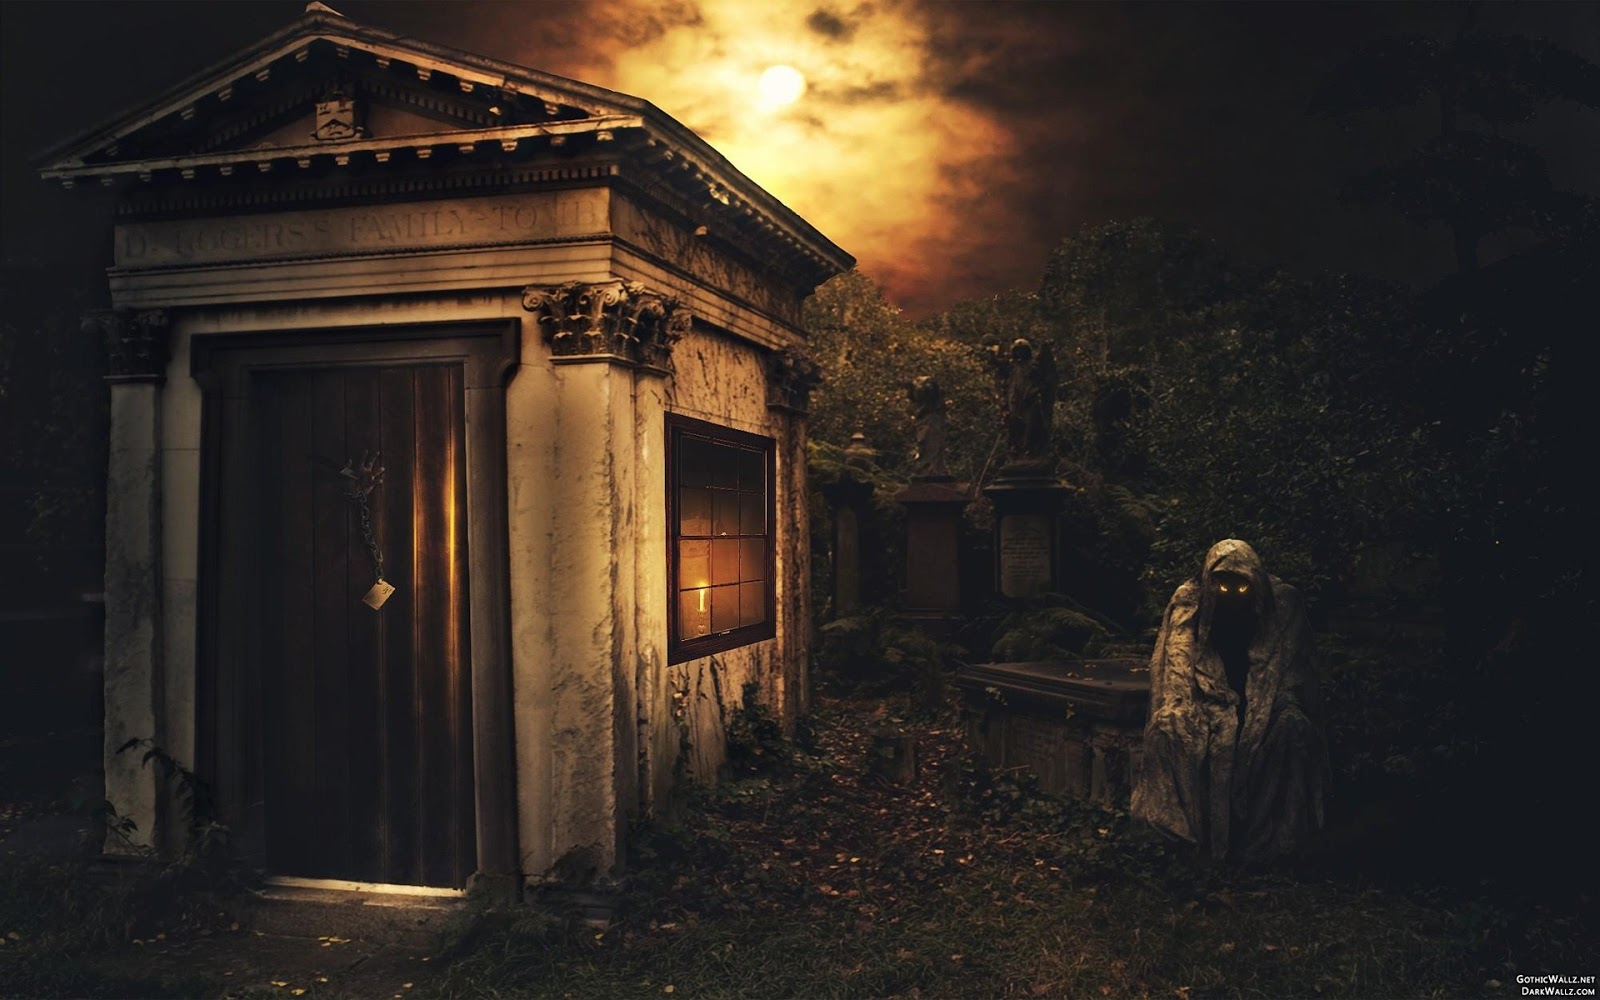 Scary gaurd of dark chamber | Dark Gothic Wallpaper Download